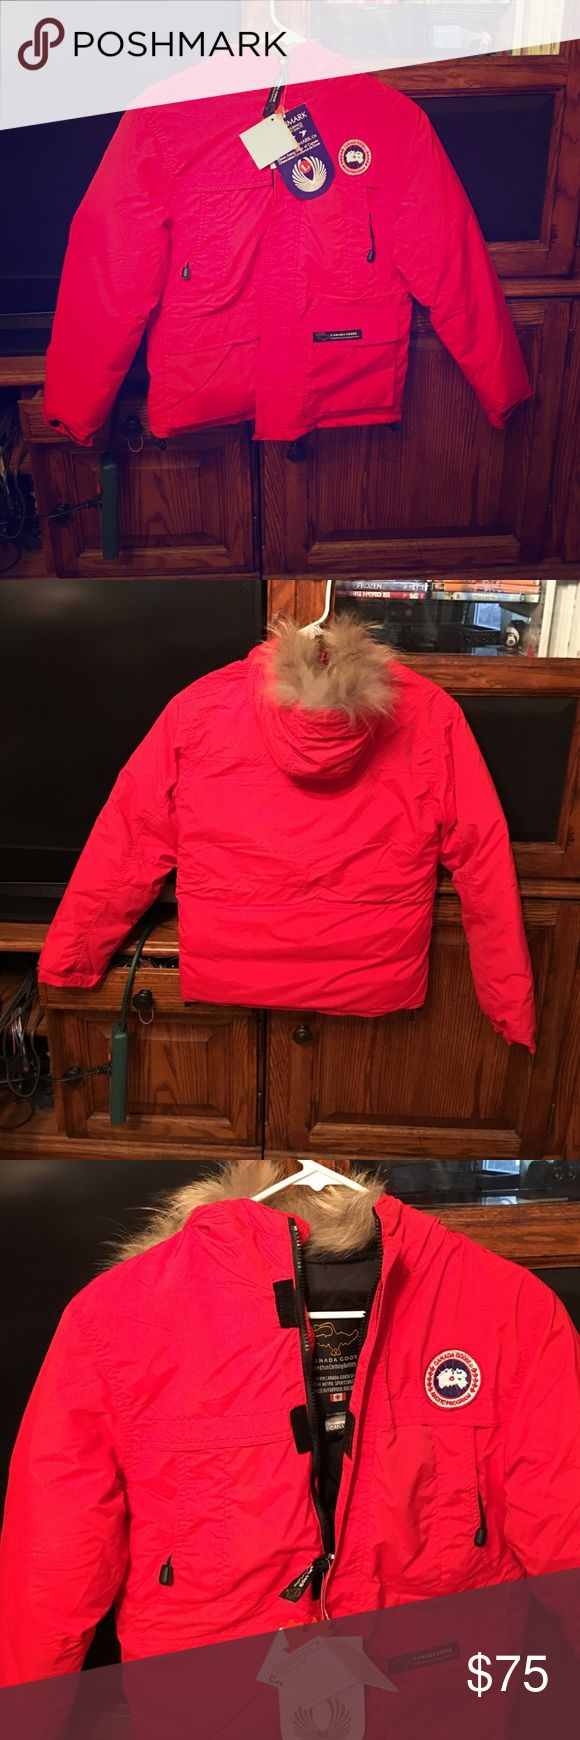 Downmark Youth Size Large Down Coat NWT This coat is brand new with tags.  It is red with faux fur around the hood.  It is top quality. Made in Canada and filled Canadian goose feathers.  It has been treated with Teflon fabric Protector so water just rolls off and stains just wipe away. Downmark Jackets & Coats